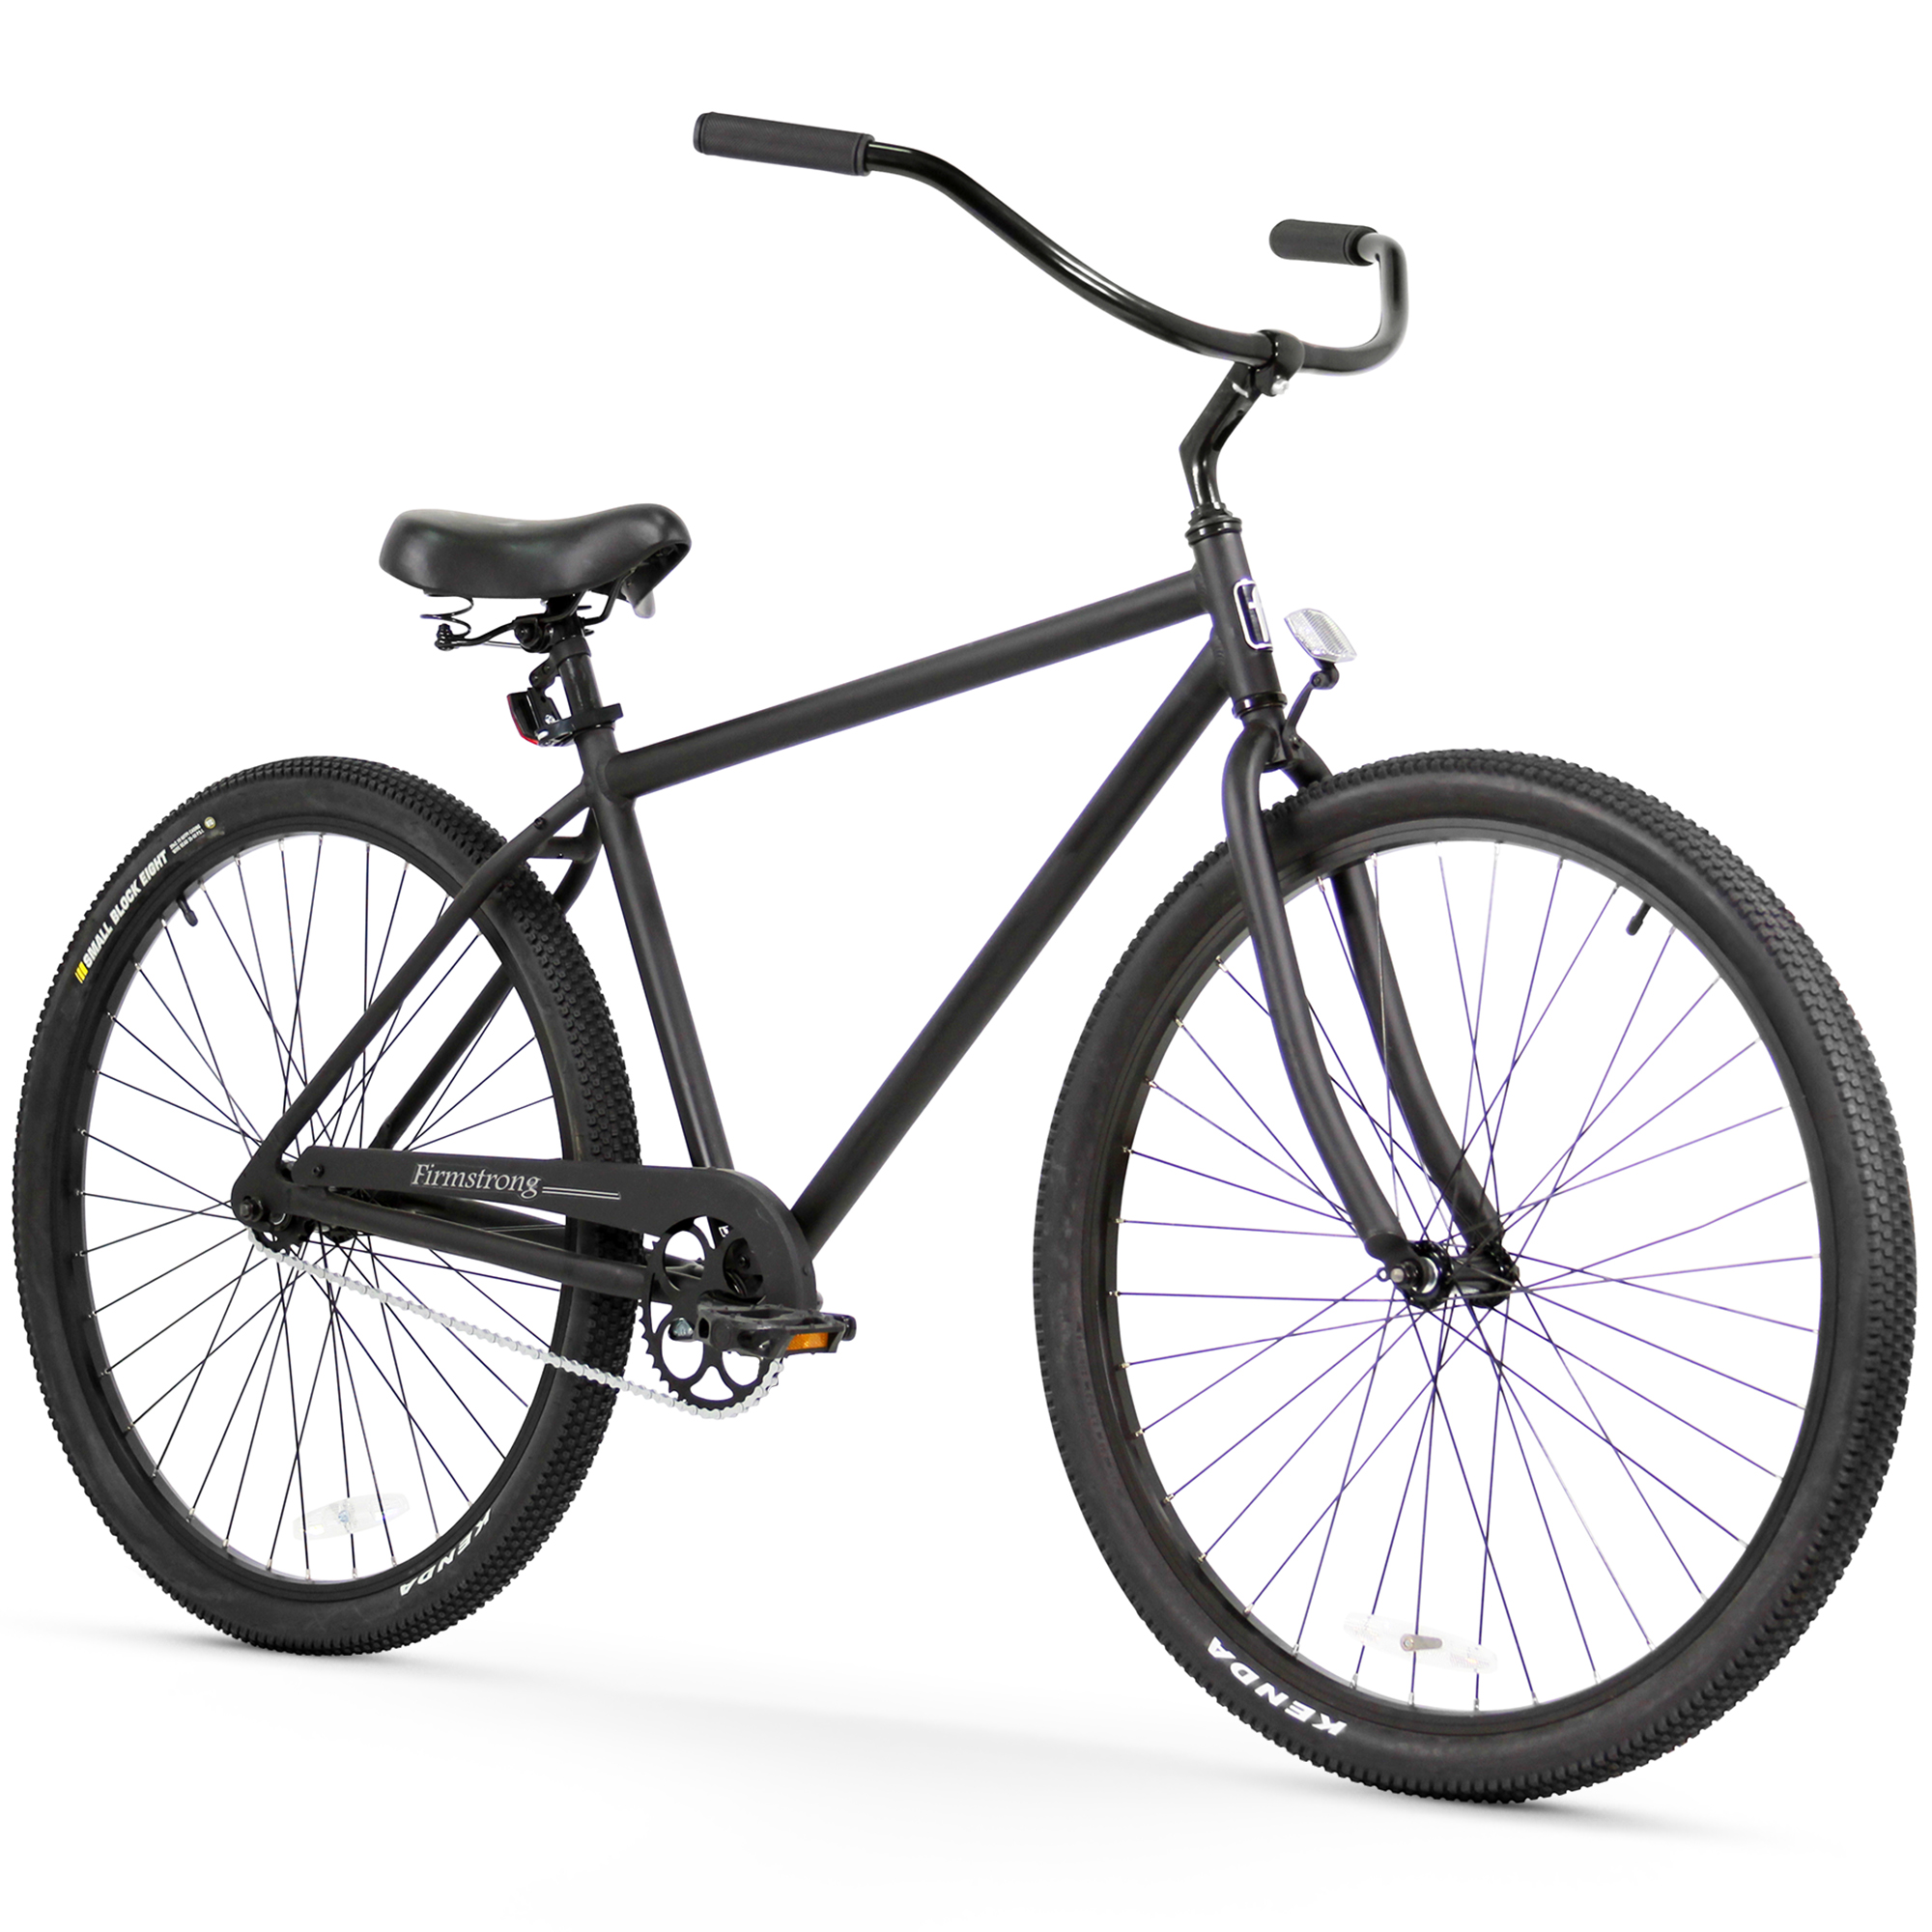 "Firmstrong Black Rock Men's 29"" Single Speed Beach Cruiser Bicycle, Matte Black"